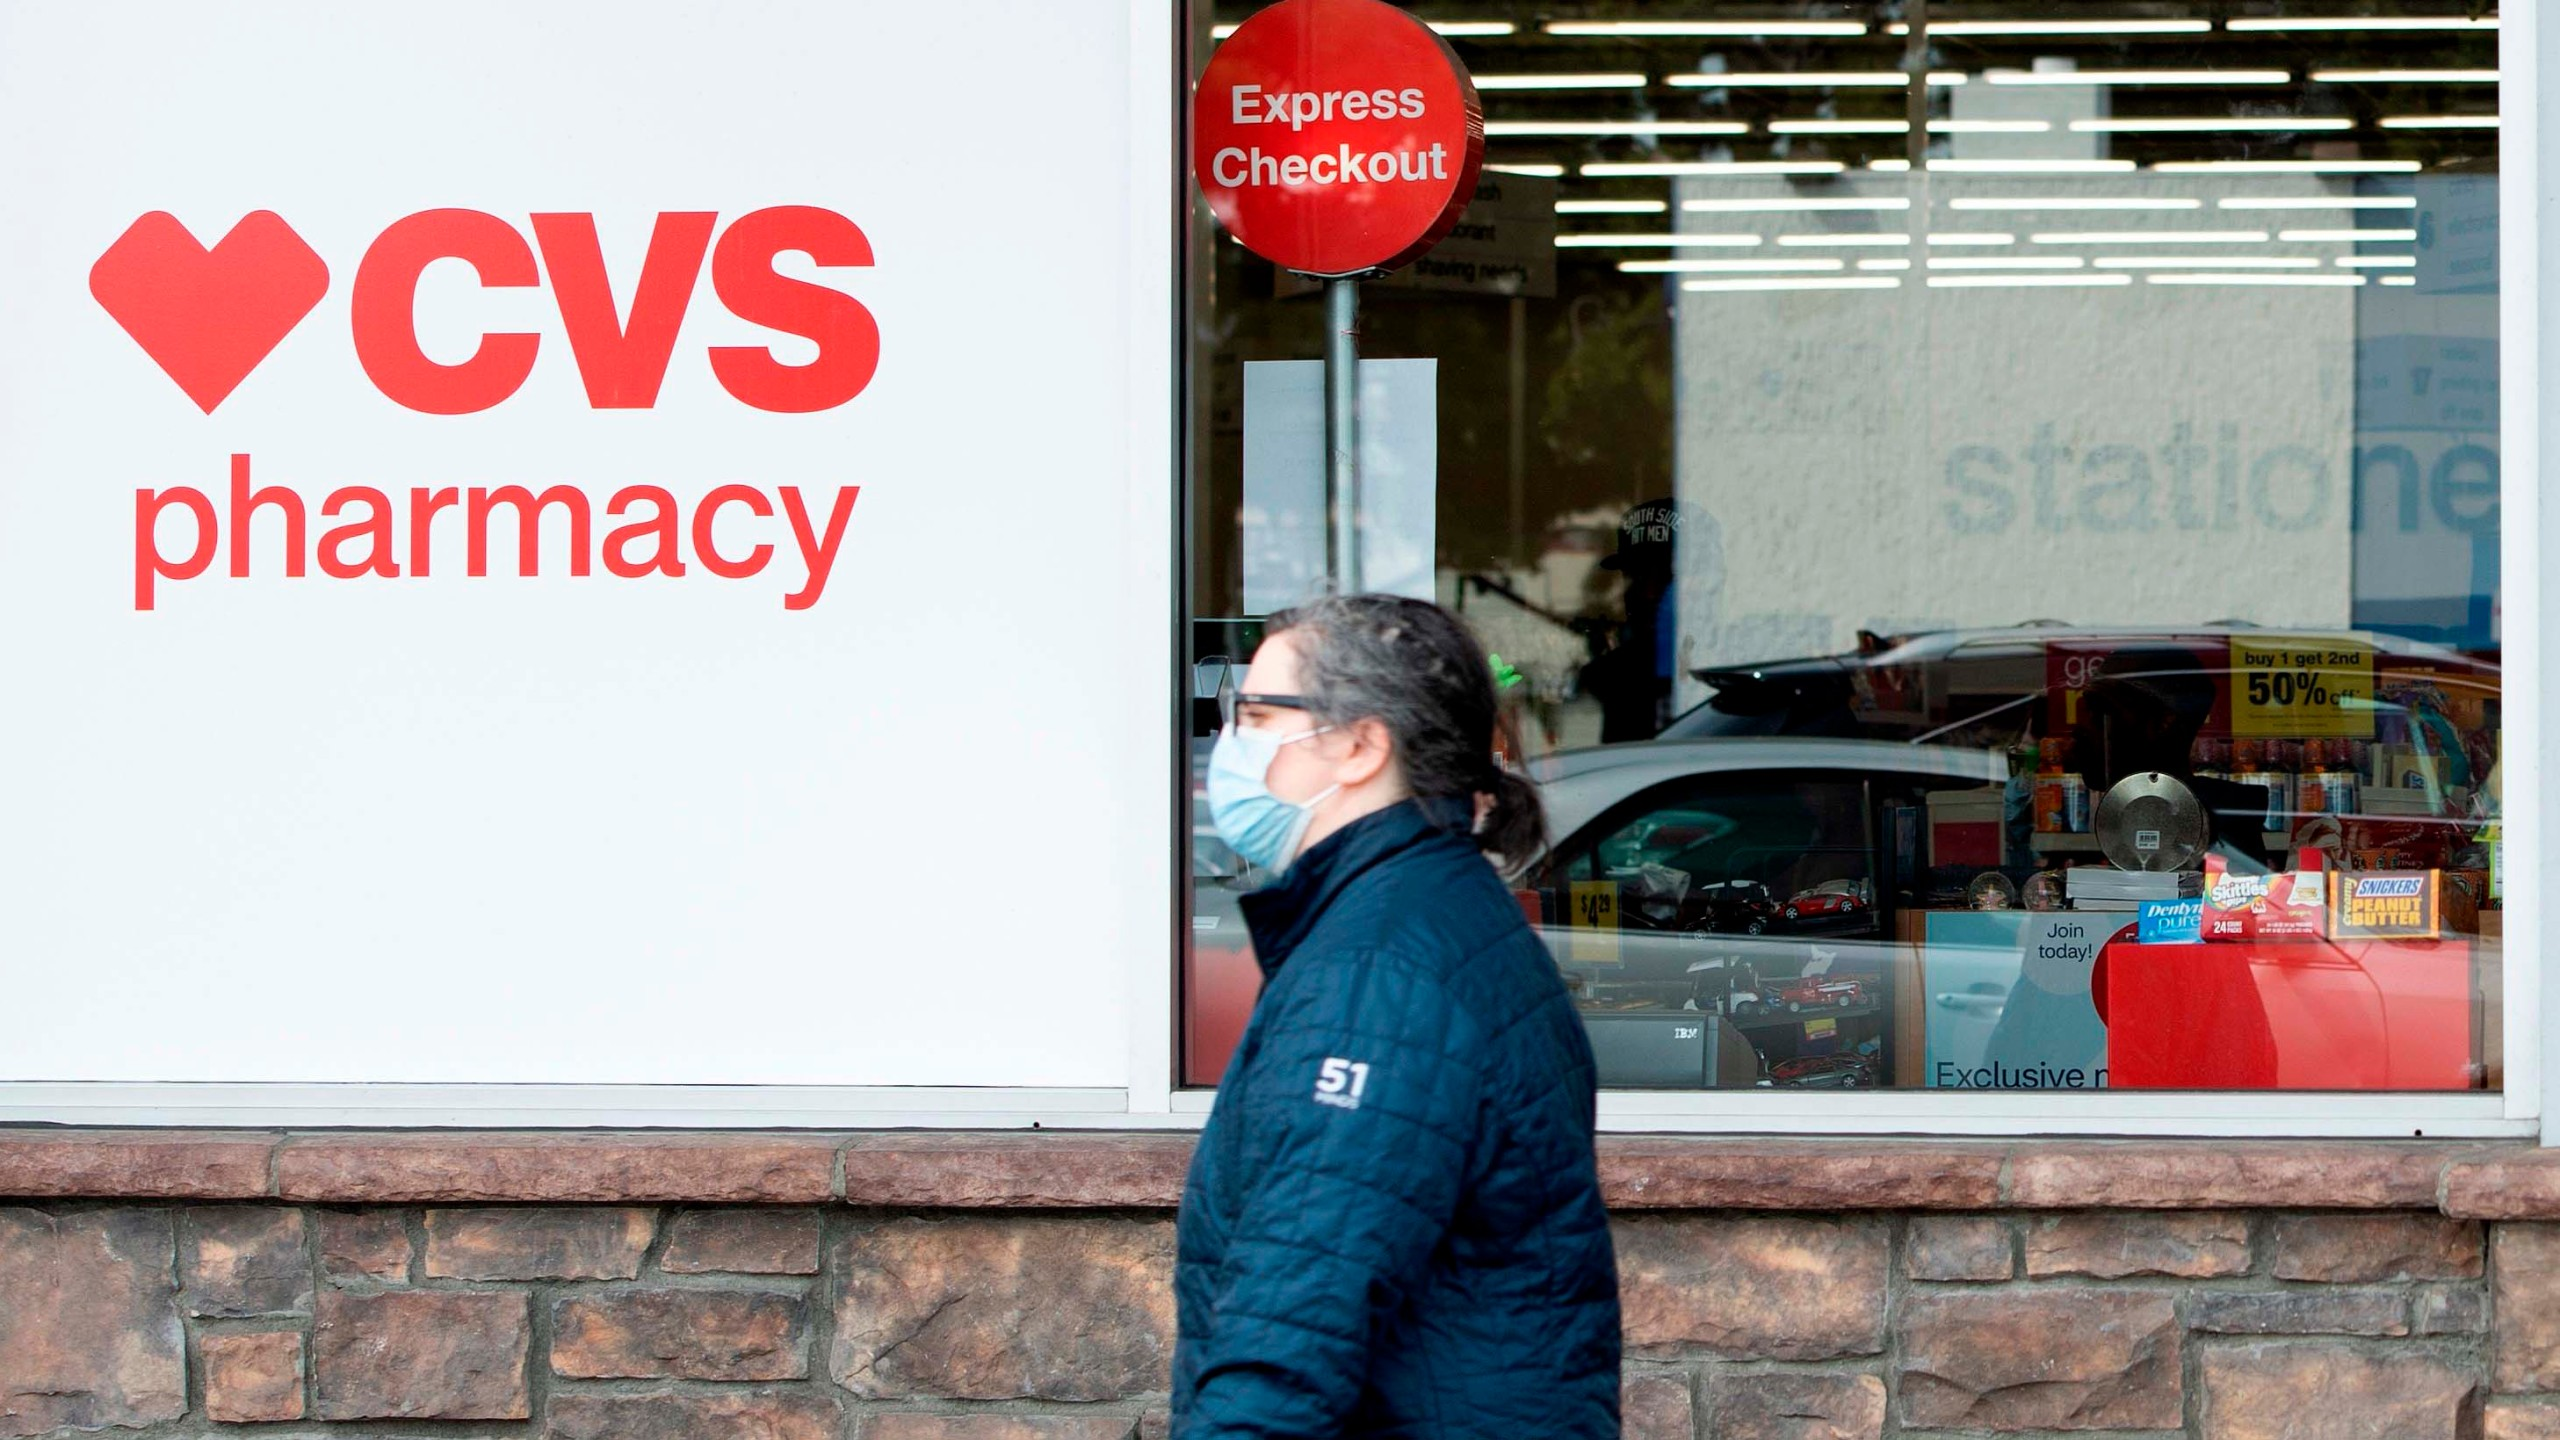 A person with a mask shops at CVS in Los Angeles during the Covid 19 crisis as California is under orders to stay home, March 31, 2020. (Photo by VALERIE MACON / AFP) (Photo by VALERIE MACON/AFP via Getty Images)